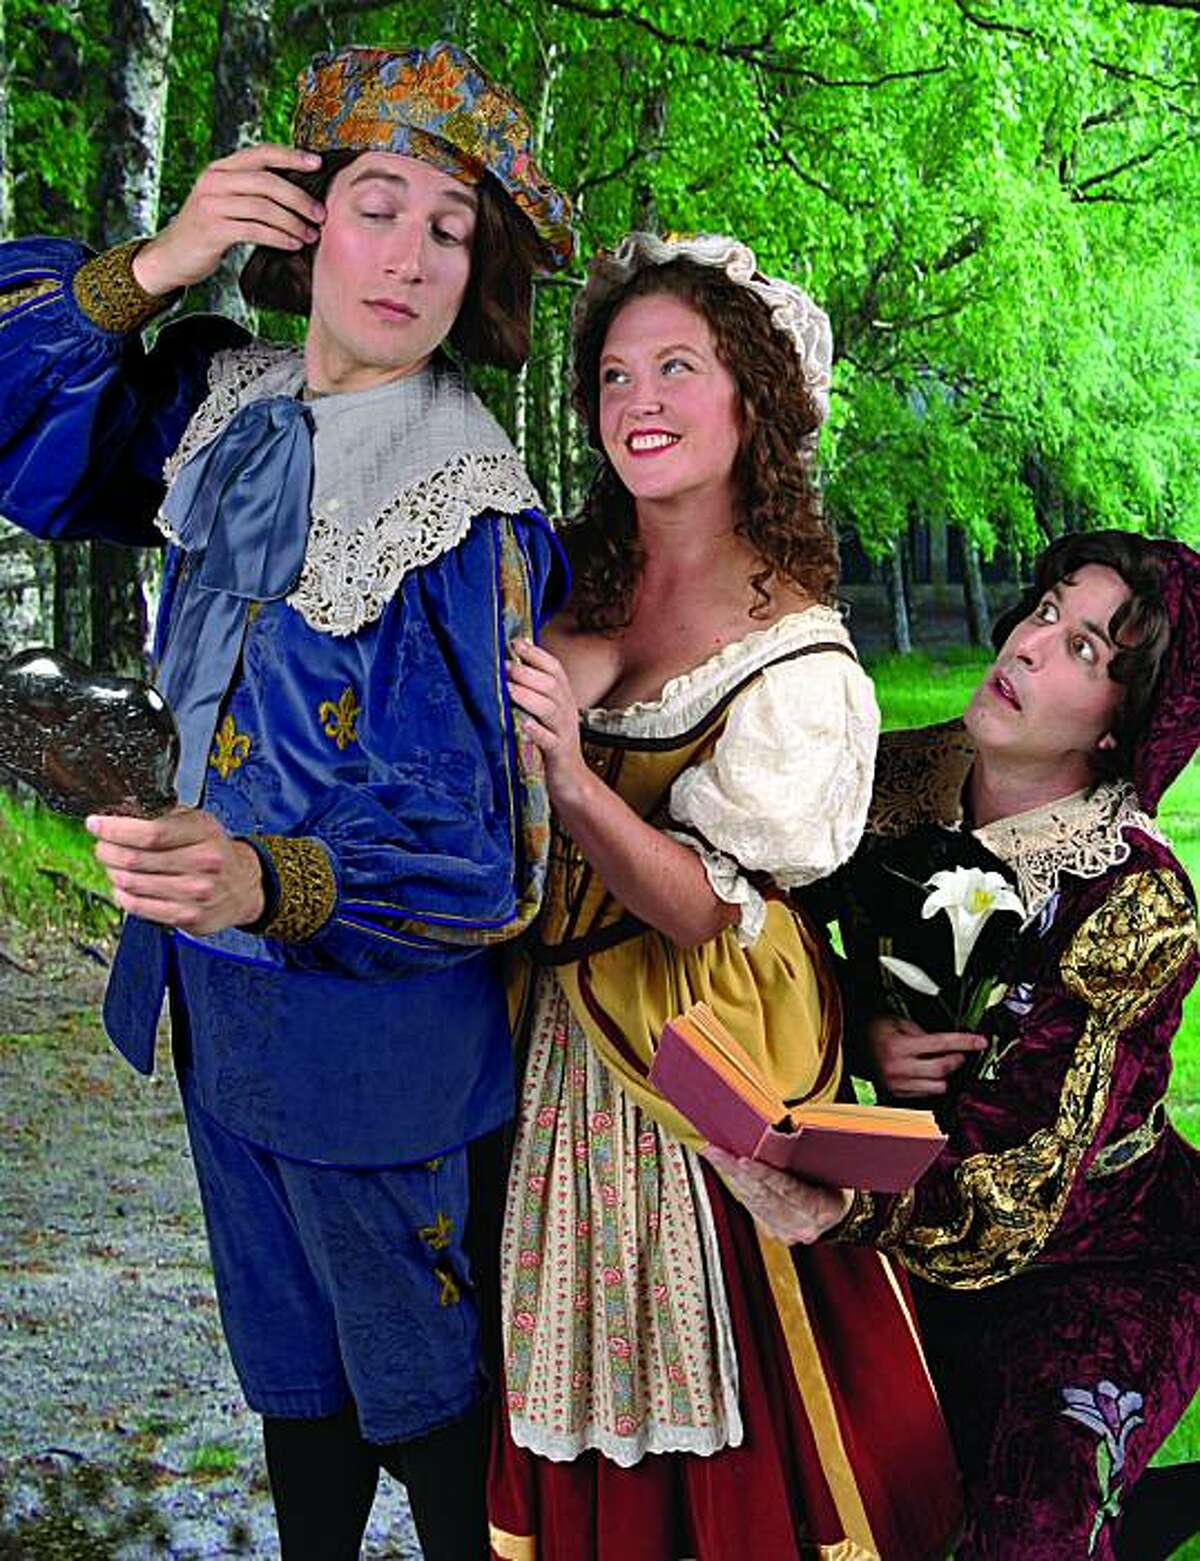 Chris Uzelac as Grosvenor, Jennifer Ashworth as Patience and F. Lawrence Ewing as Bunthorne in Gilbert & Sullivan's